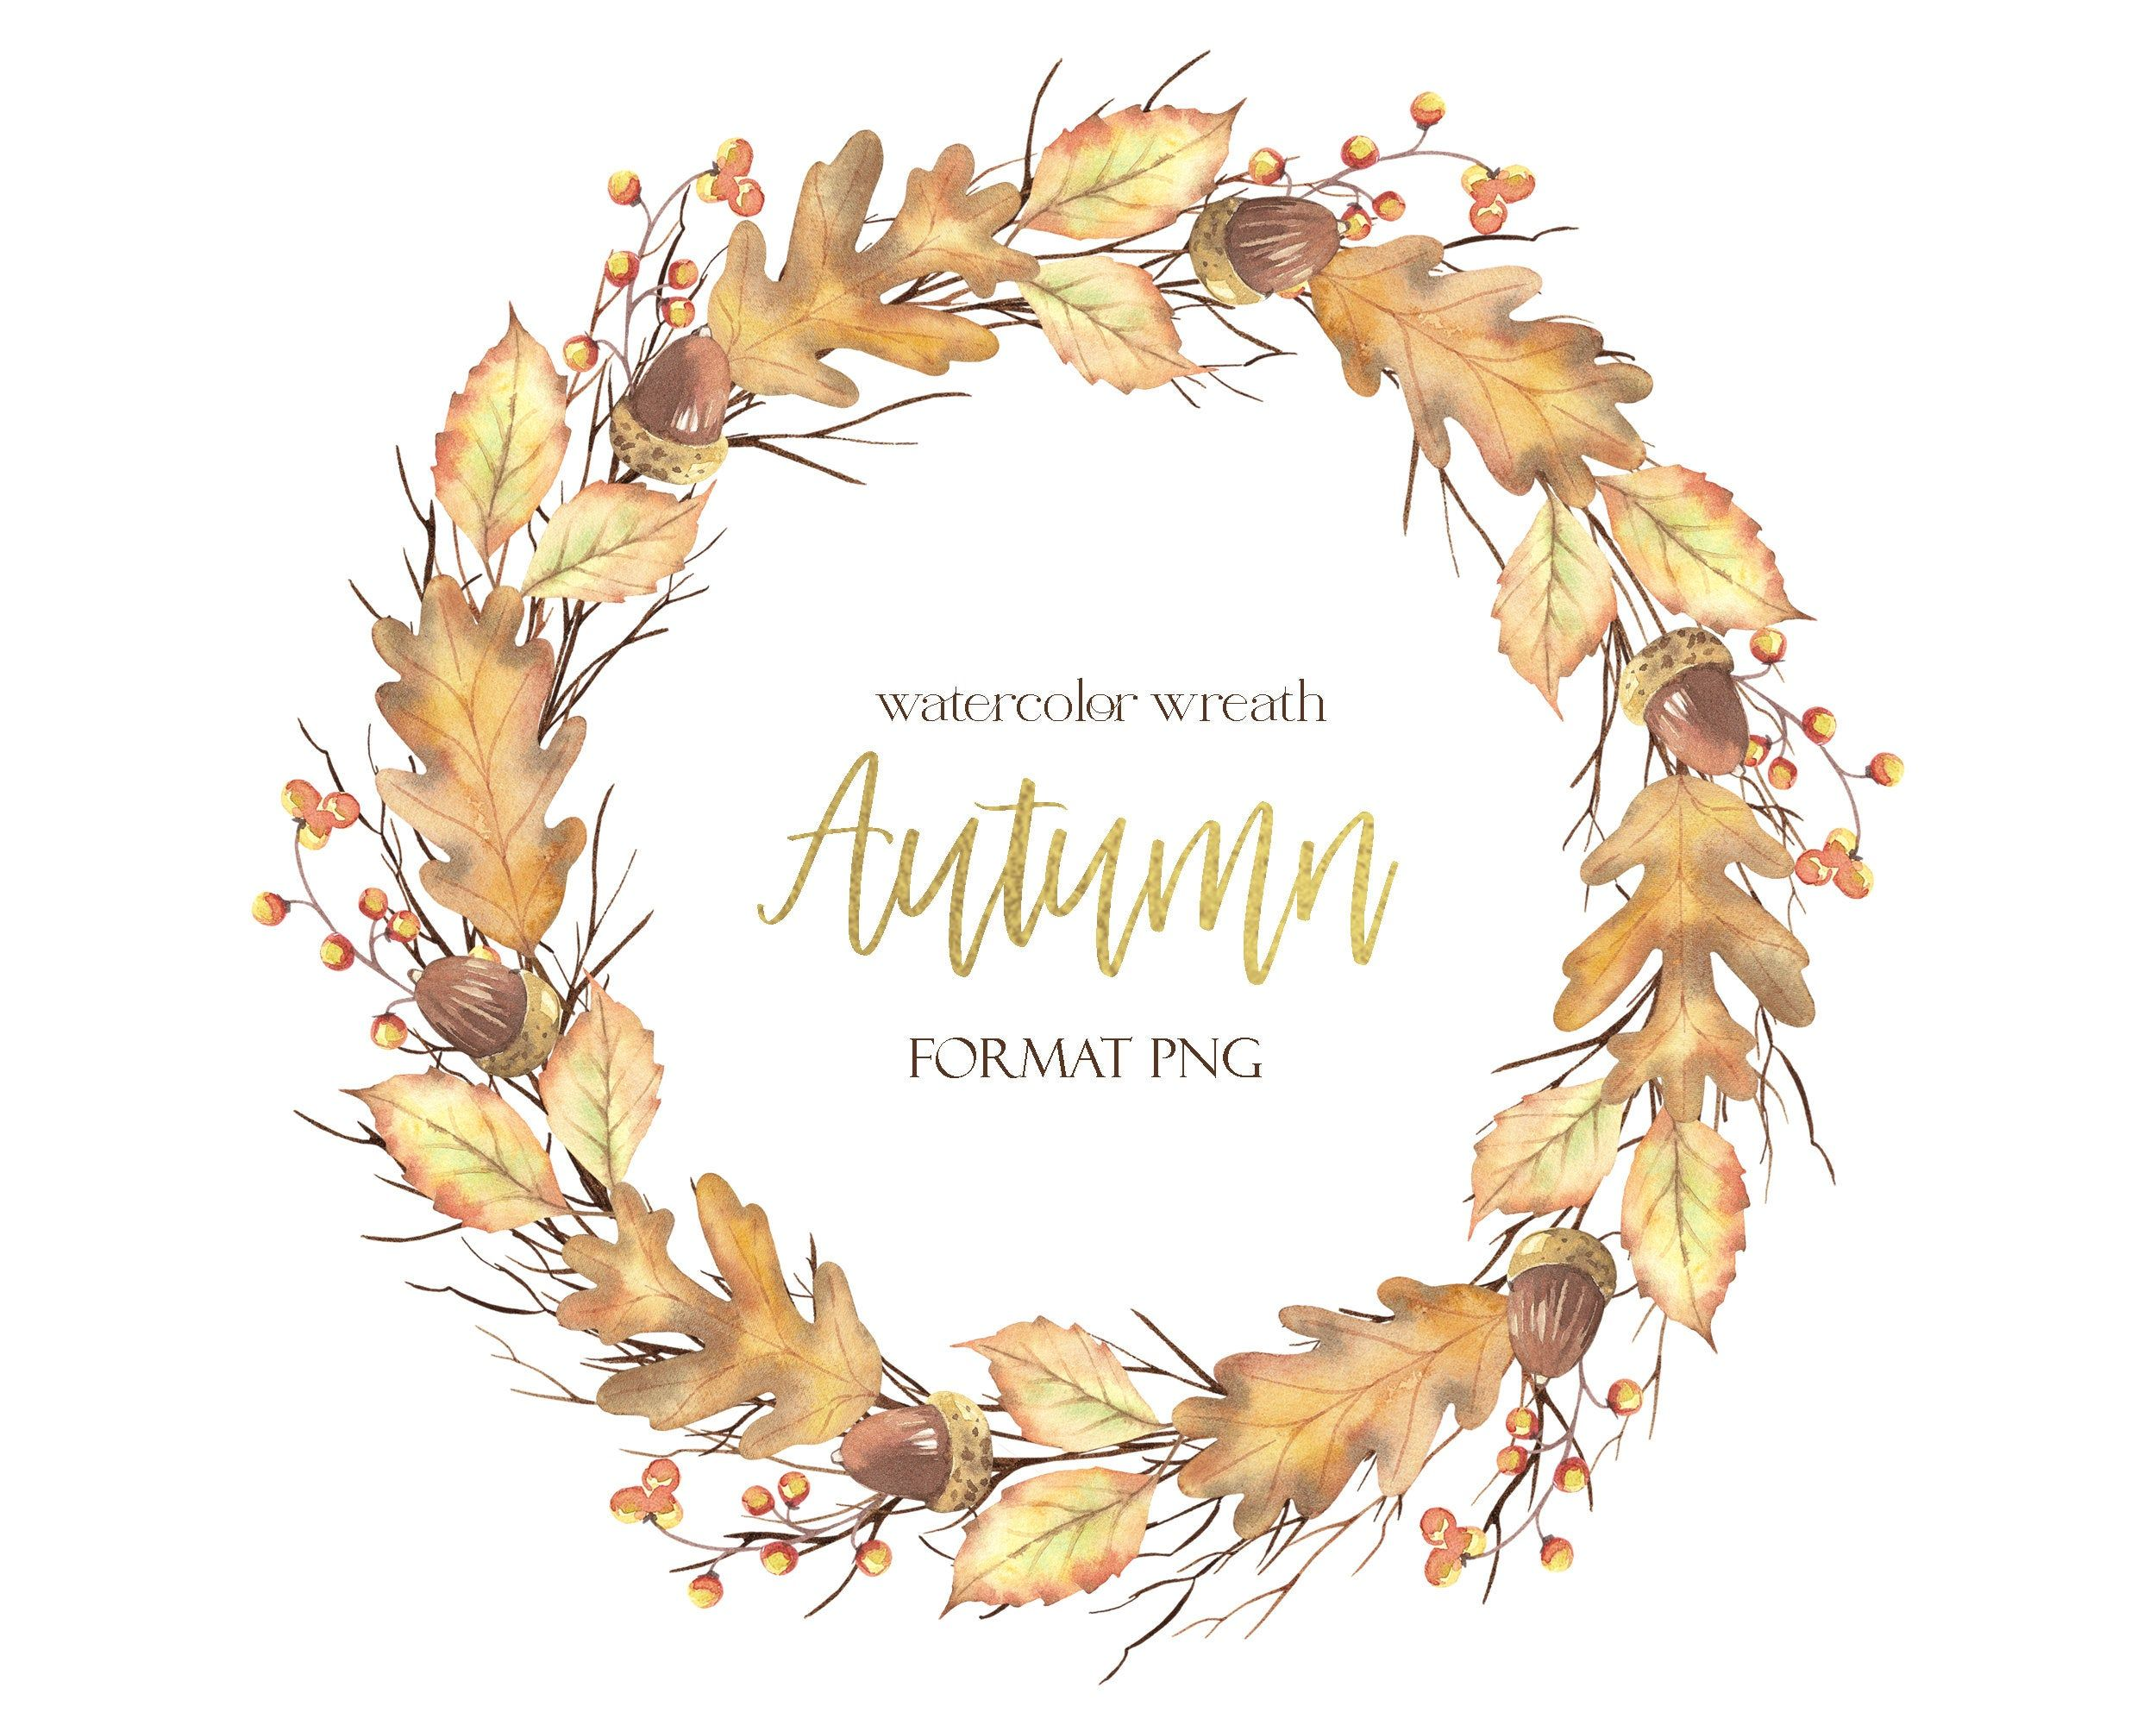 Watercolor Wreath Autumn With Leaves And Berries Acorns Etsy Wreath Watercolor Fall Wreaths Gold Digital Paper